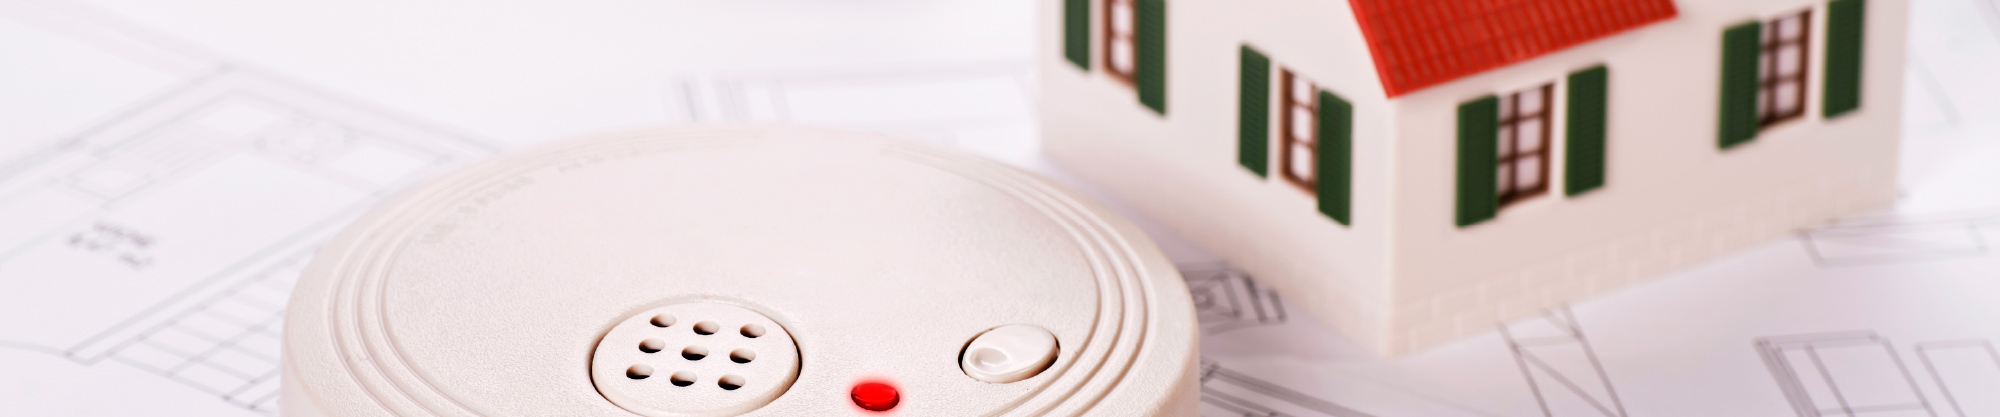 Residential fire protection system